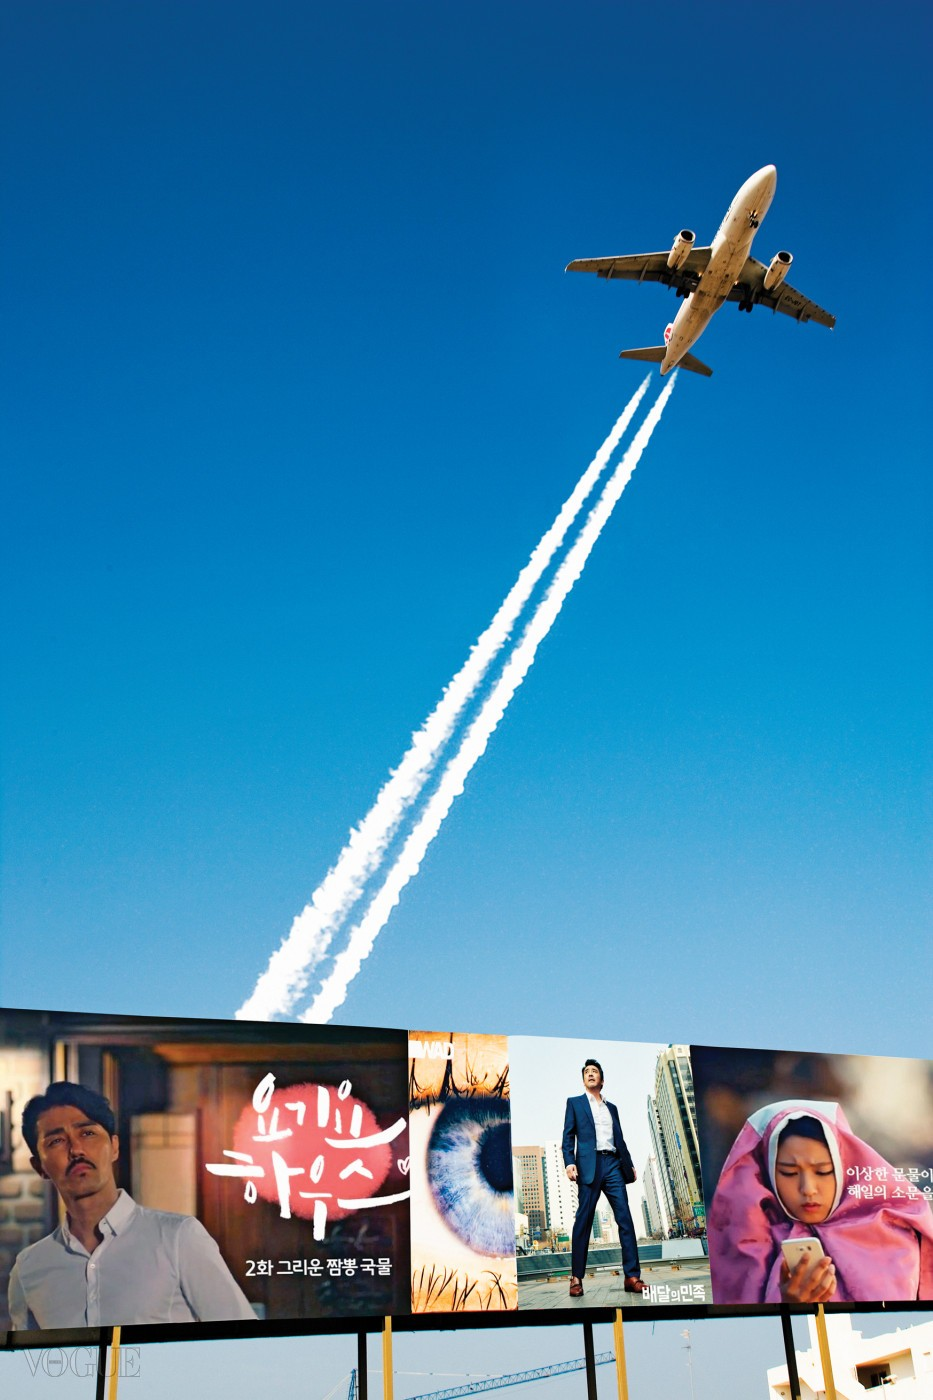 planes flying over poster advertising clubs,  landing into Ibiza airport,  Ibiza, Balearics, Spain. ©Naki Kouyioumtzis/ Axiom.